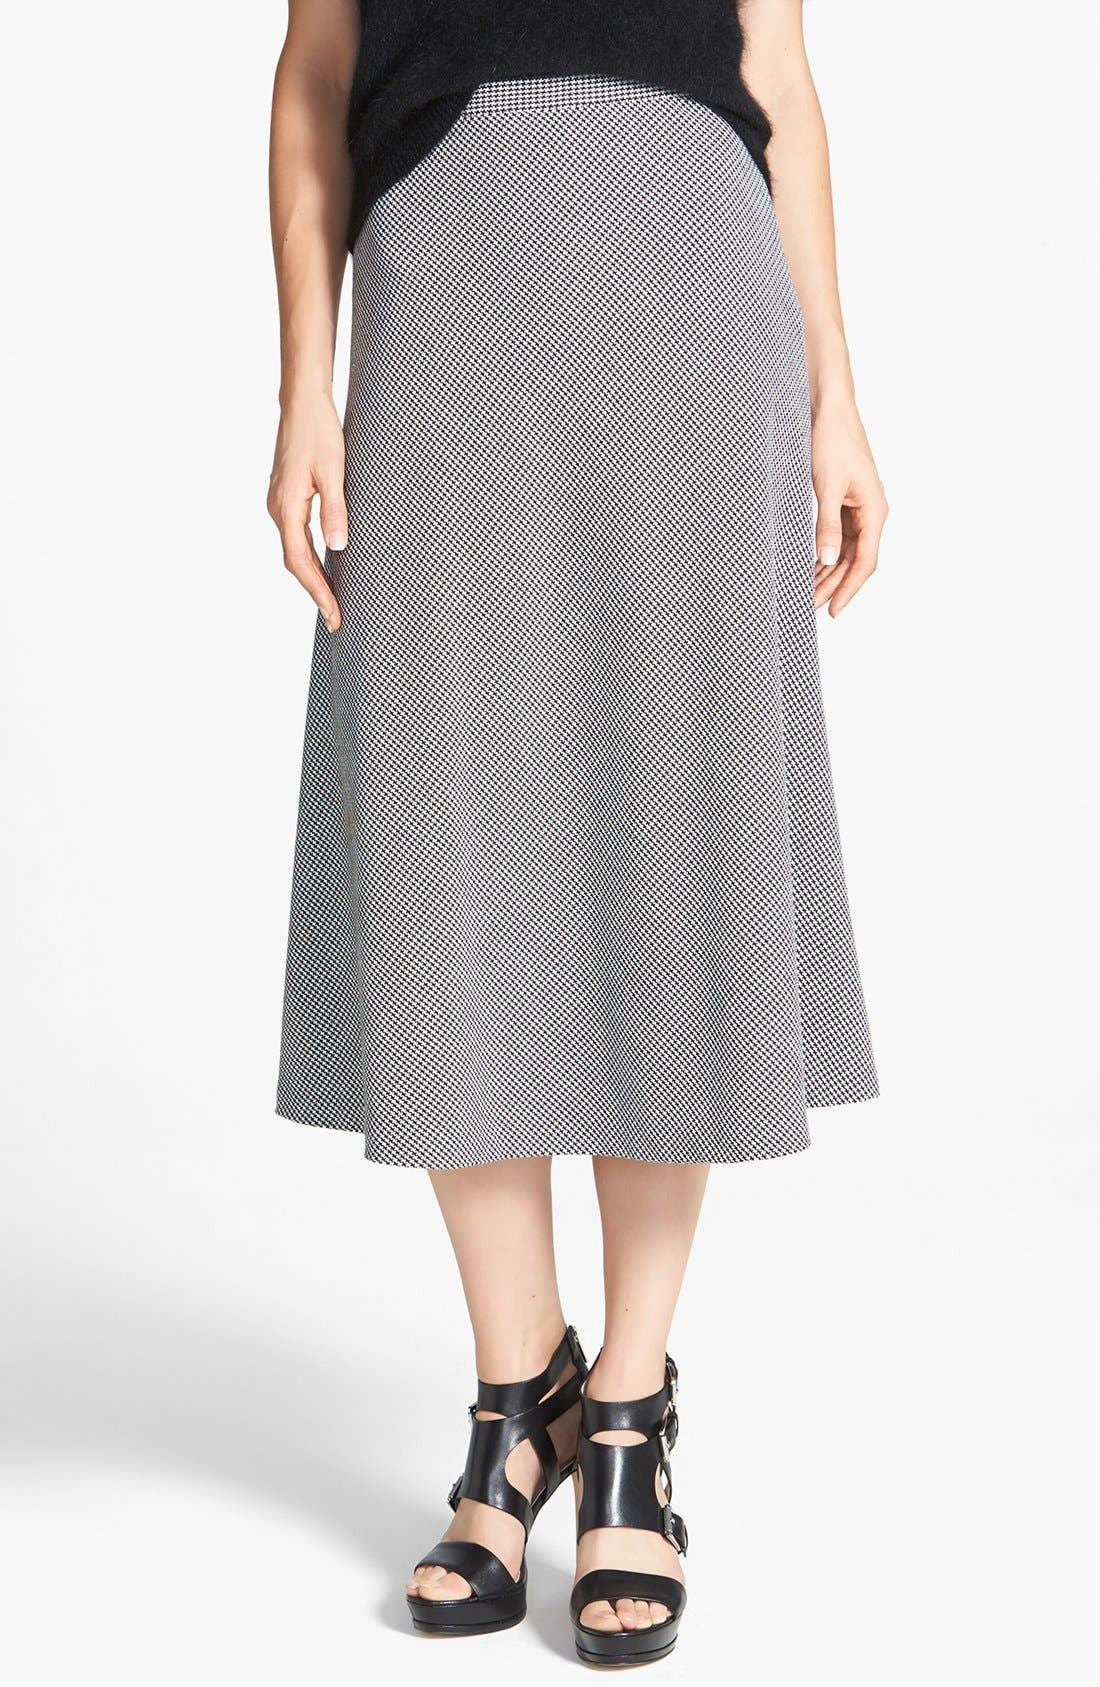 Alternate Image 1 Selected - MICHAEL Michael Kors Houndstooth Circle Skirt